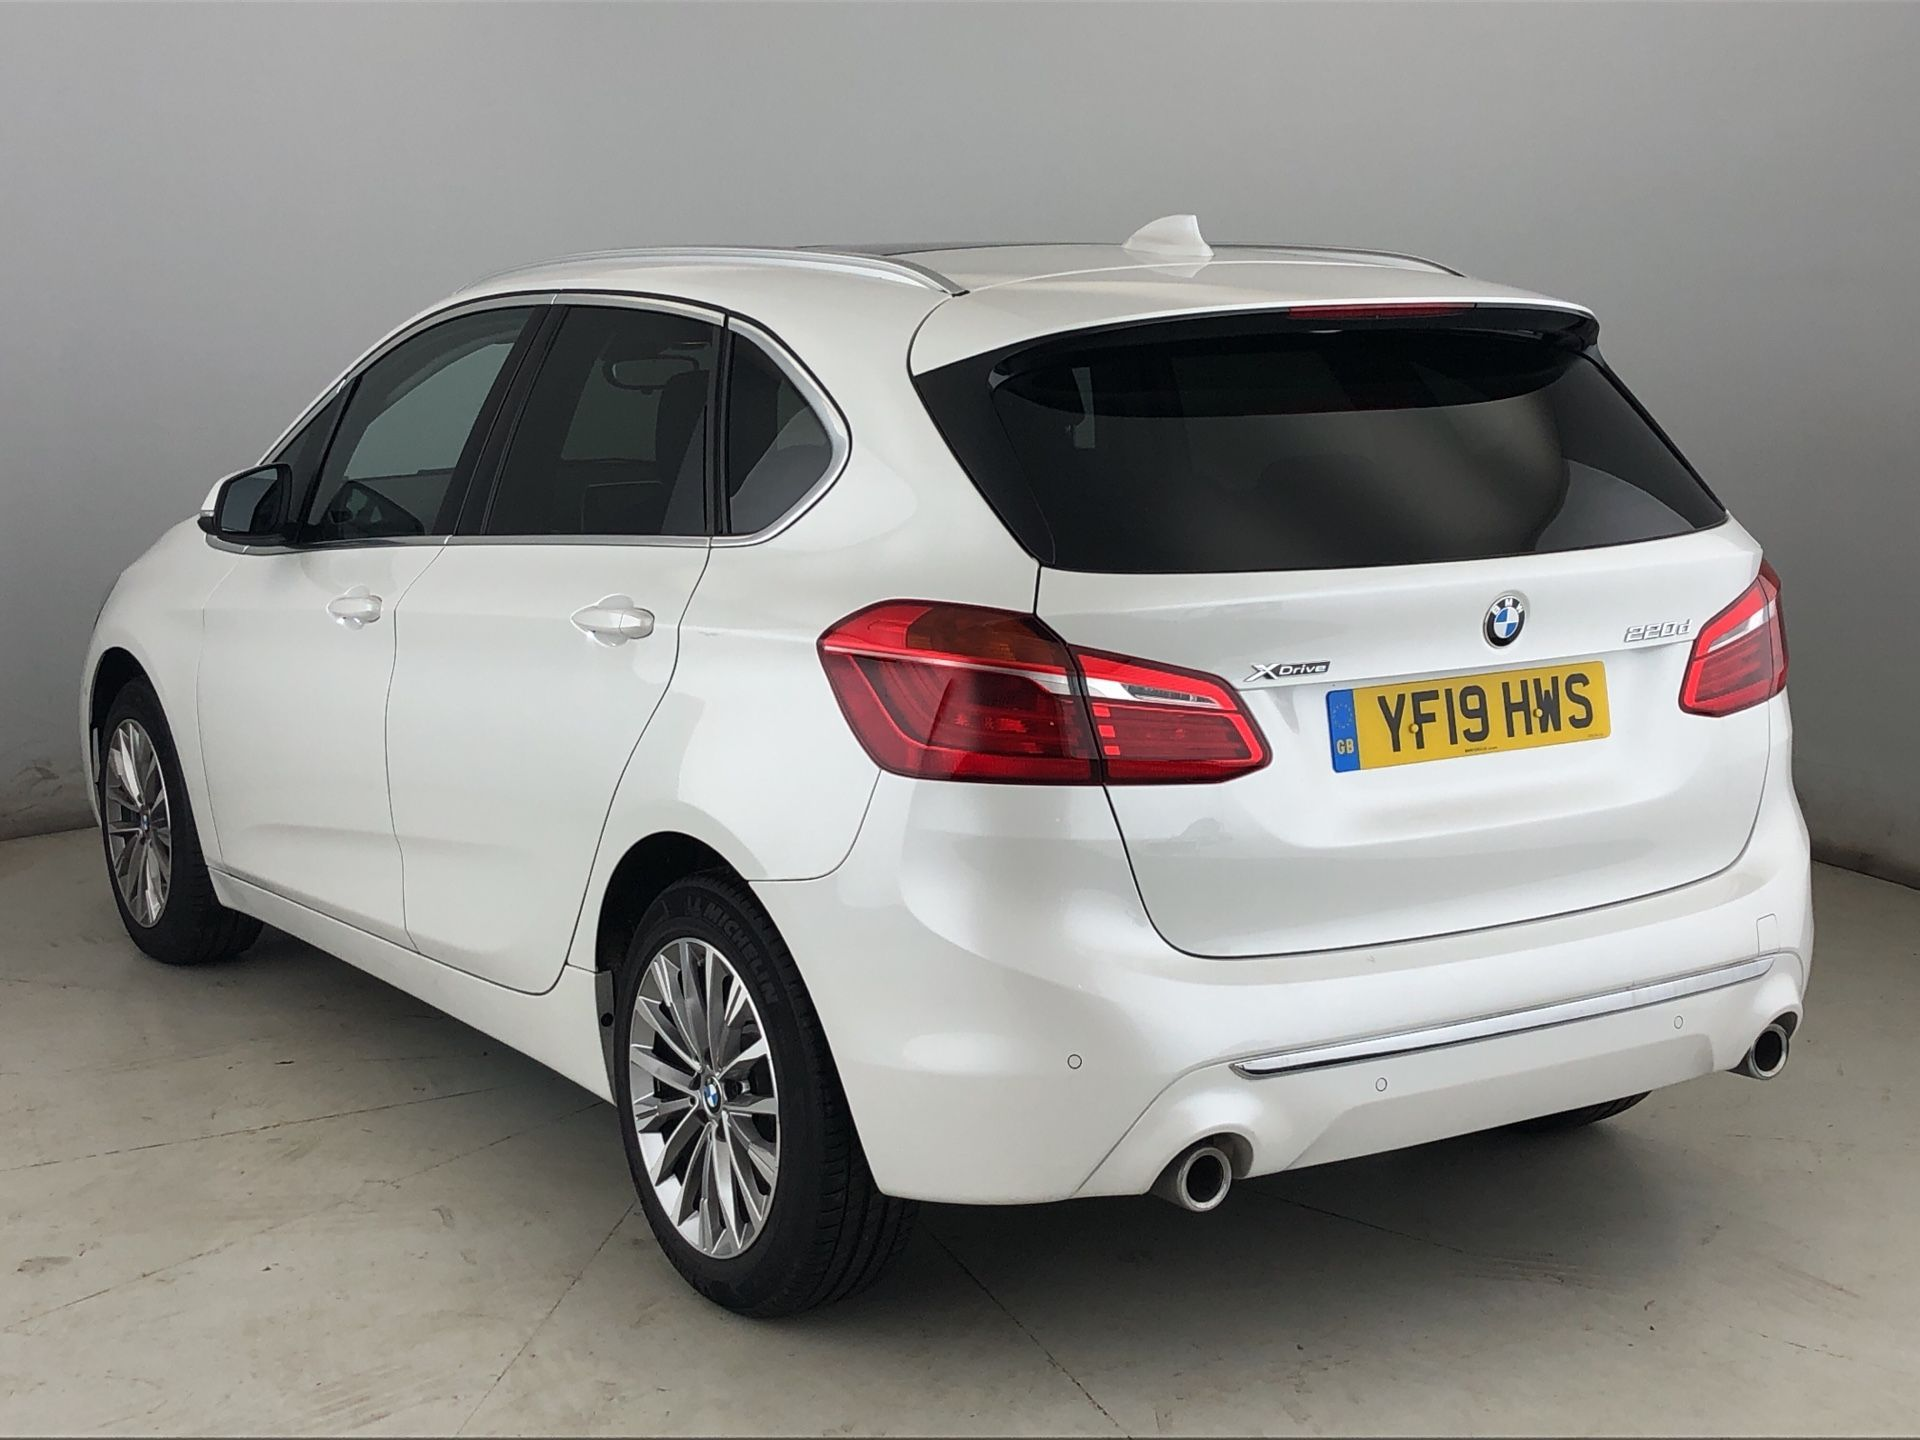 Image 2 - BMW 220d xDrive Luxury Active Tourer (YF19HWS)